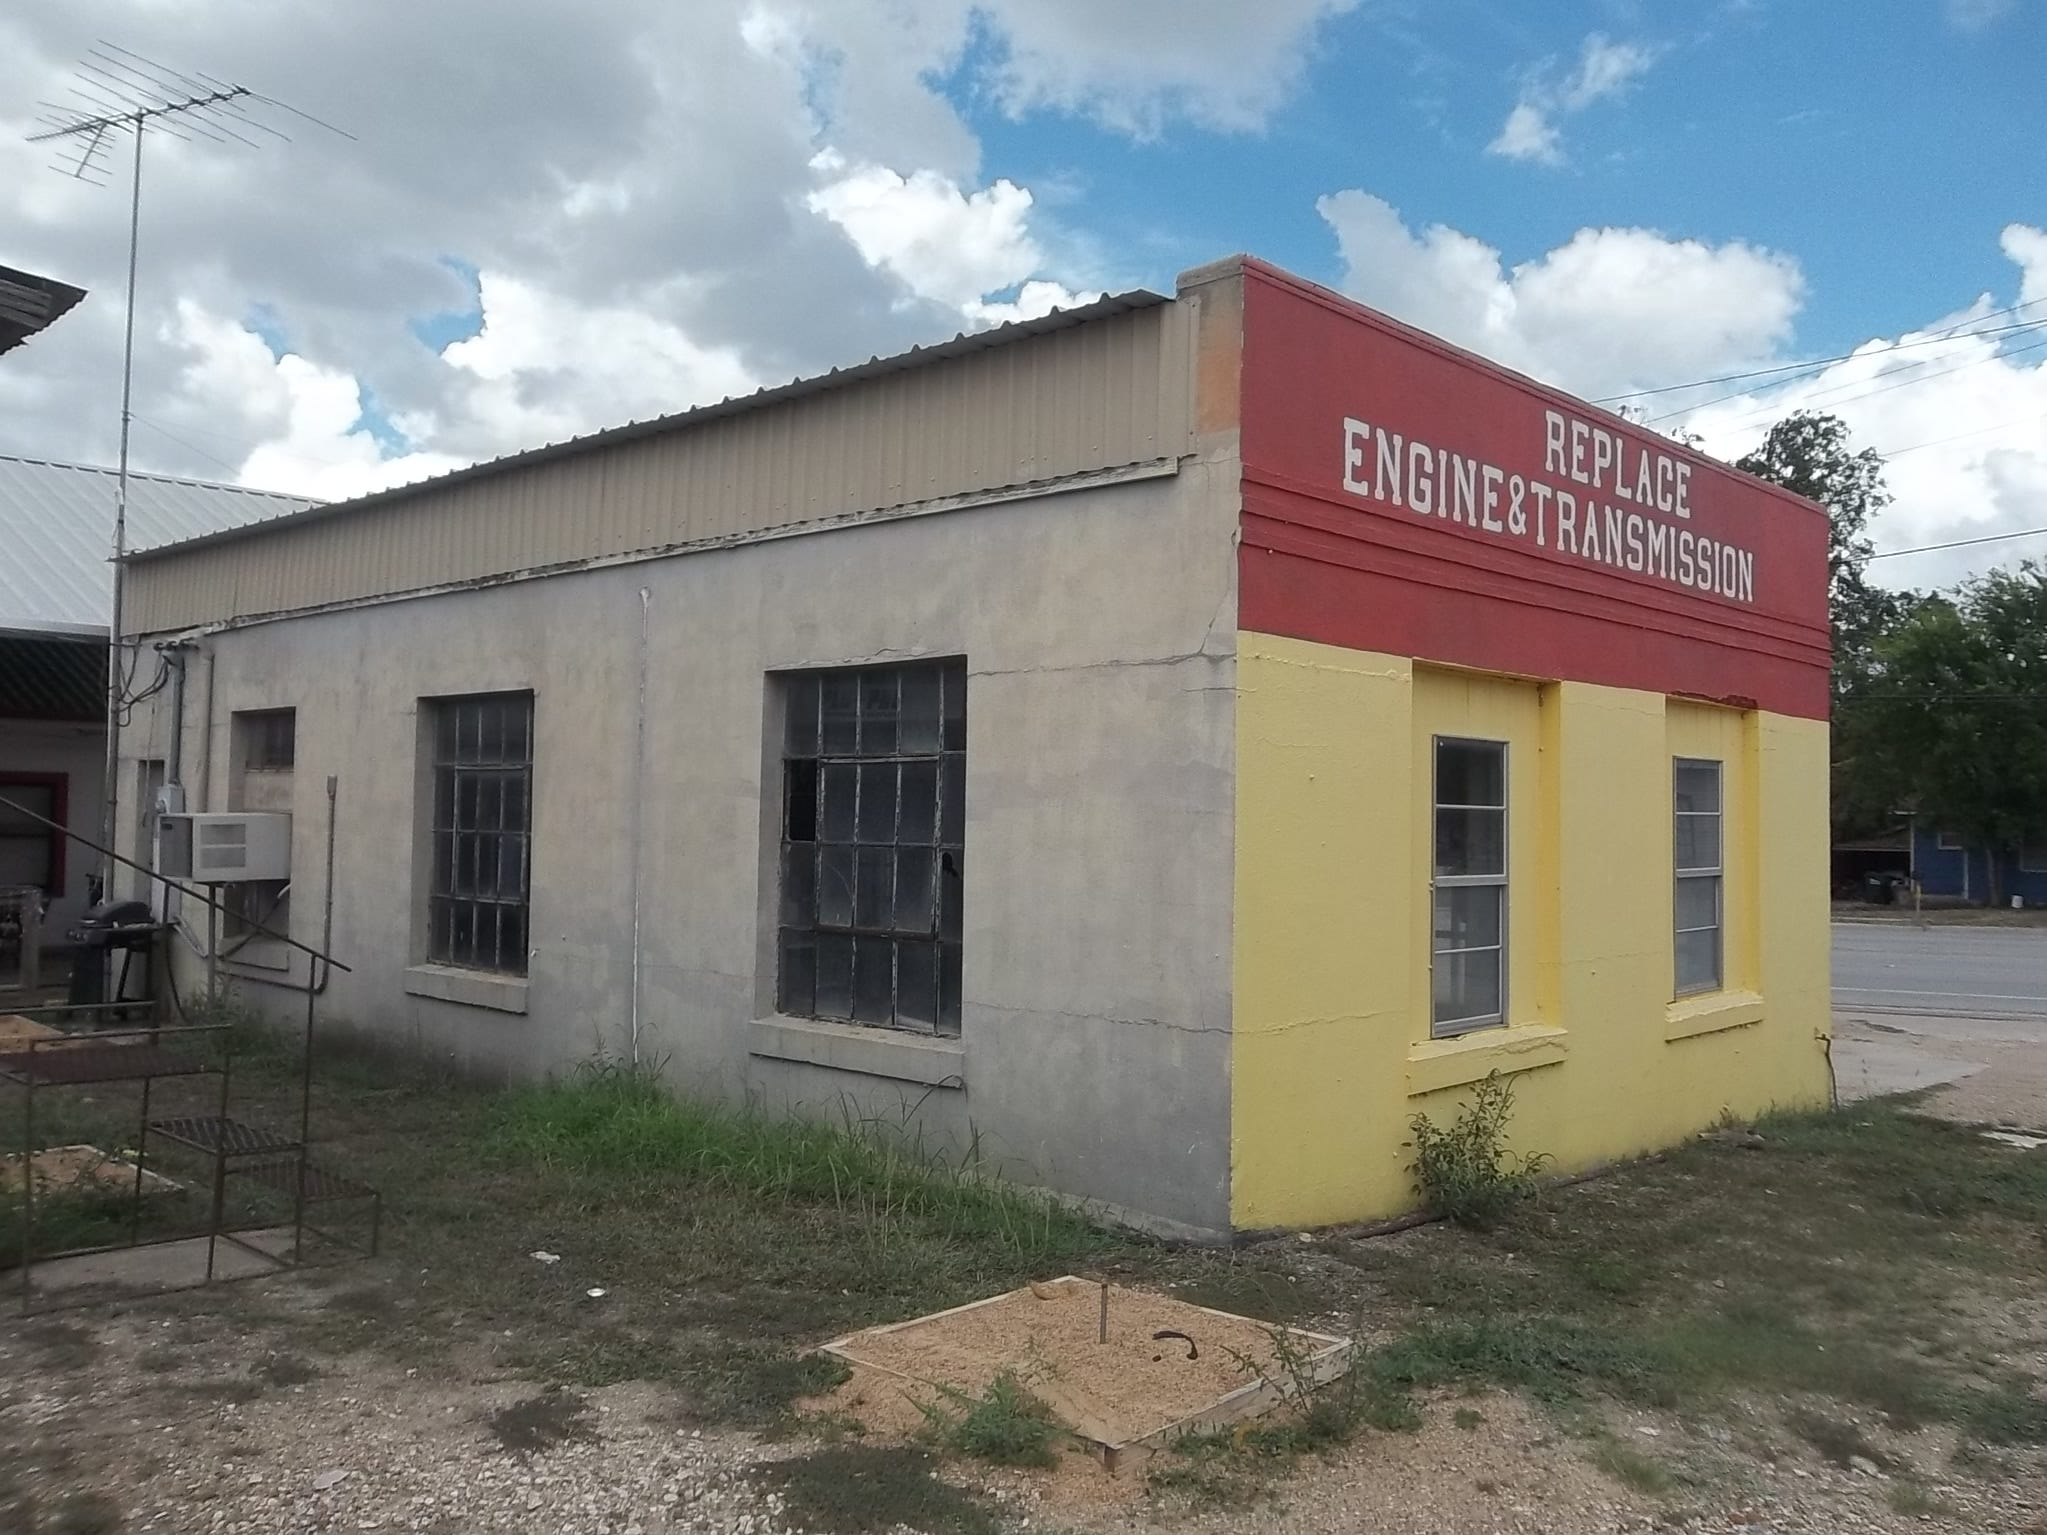 Tommy Tipton owns this commercial property at 312 N. Main St., in Flatonia, Texas.  It's market value is $49,580